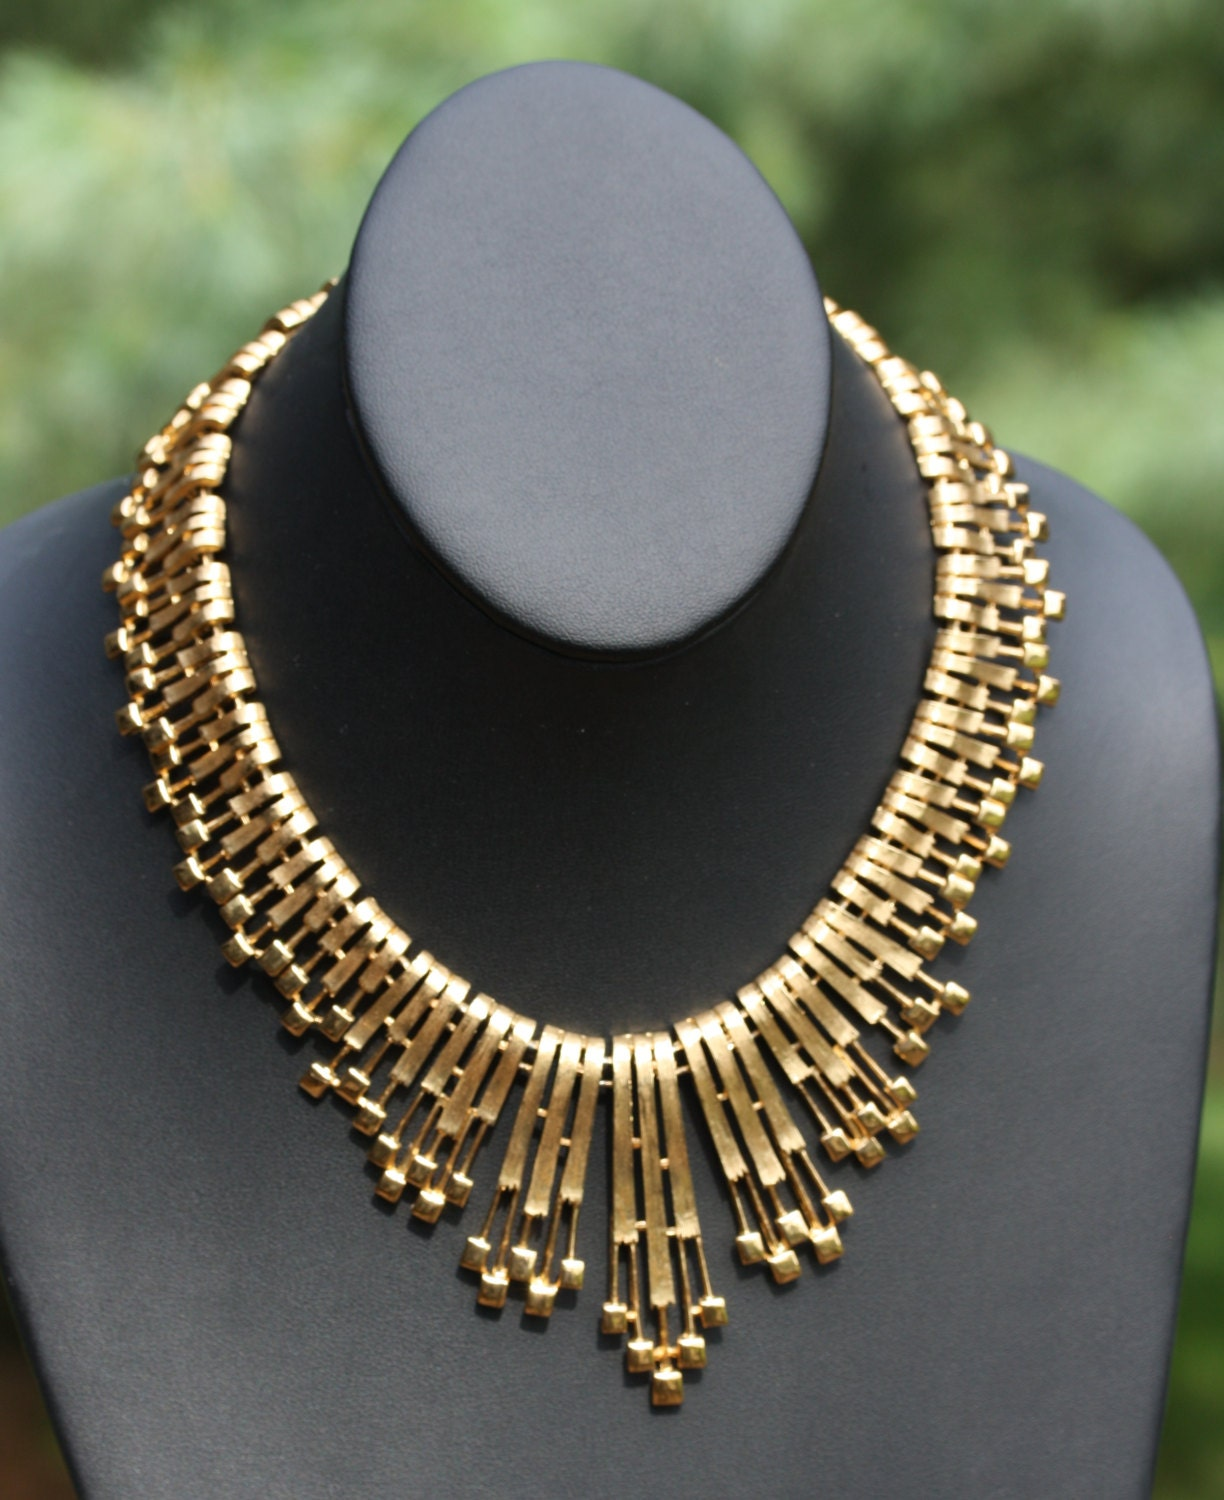 Vintage Monet Cleopatra Style Necklace